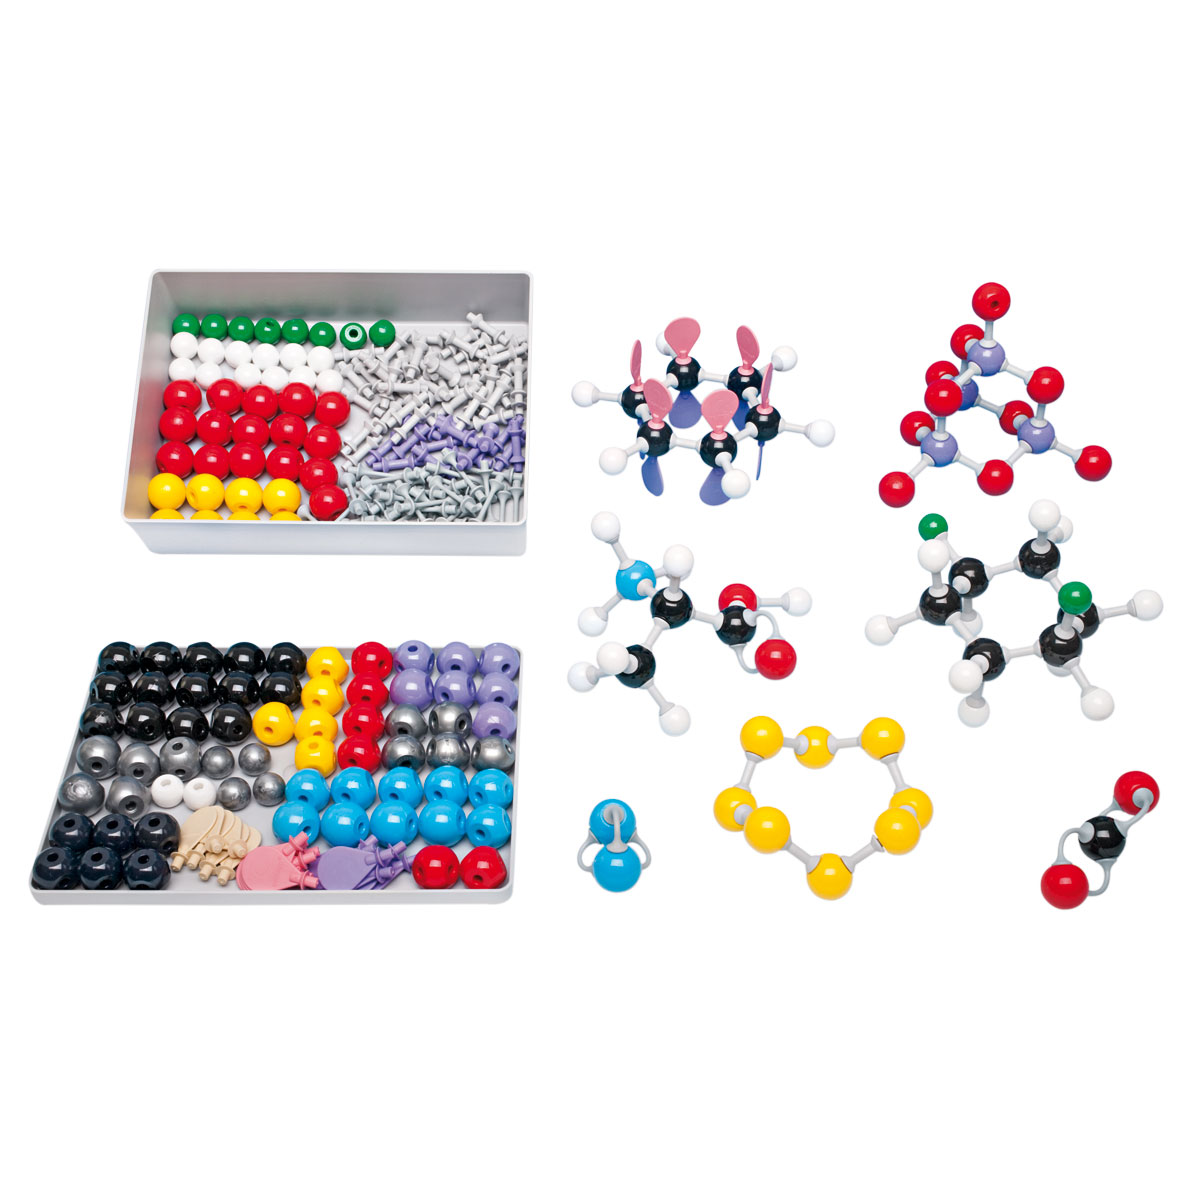 molymod molecular model kit instructions